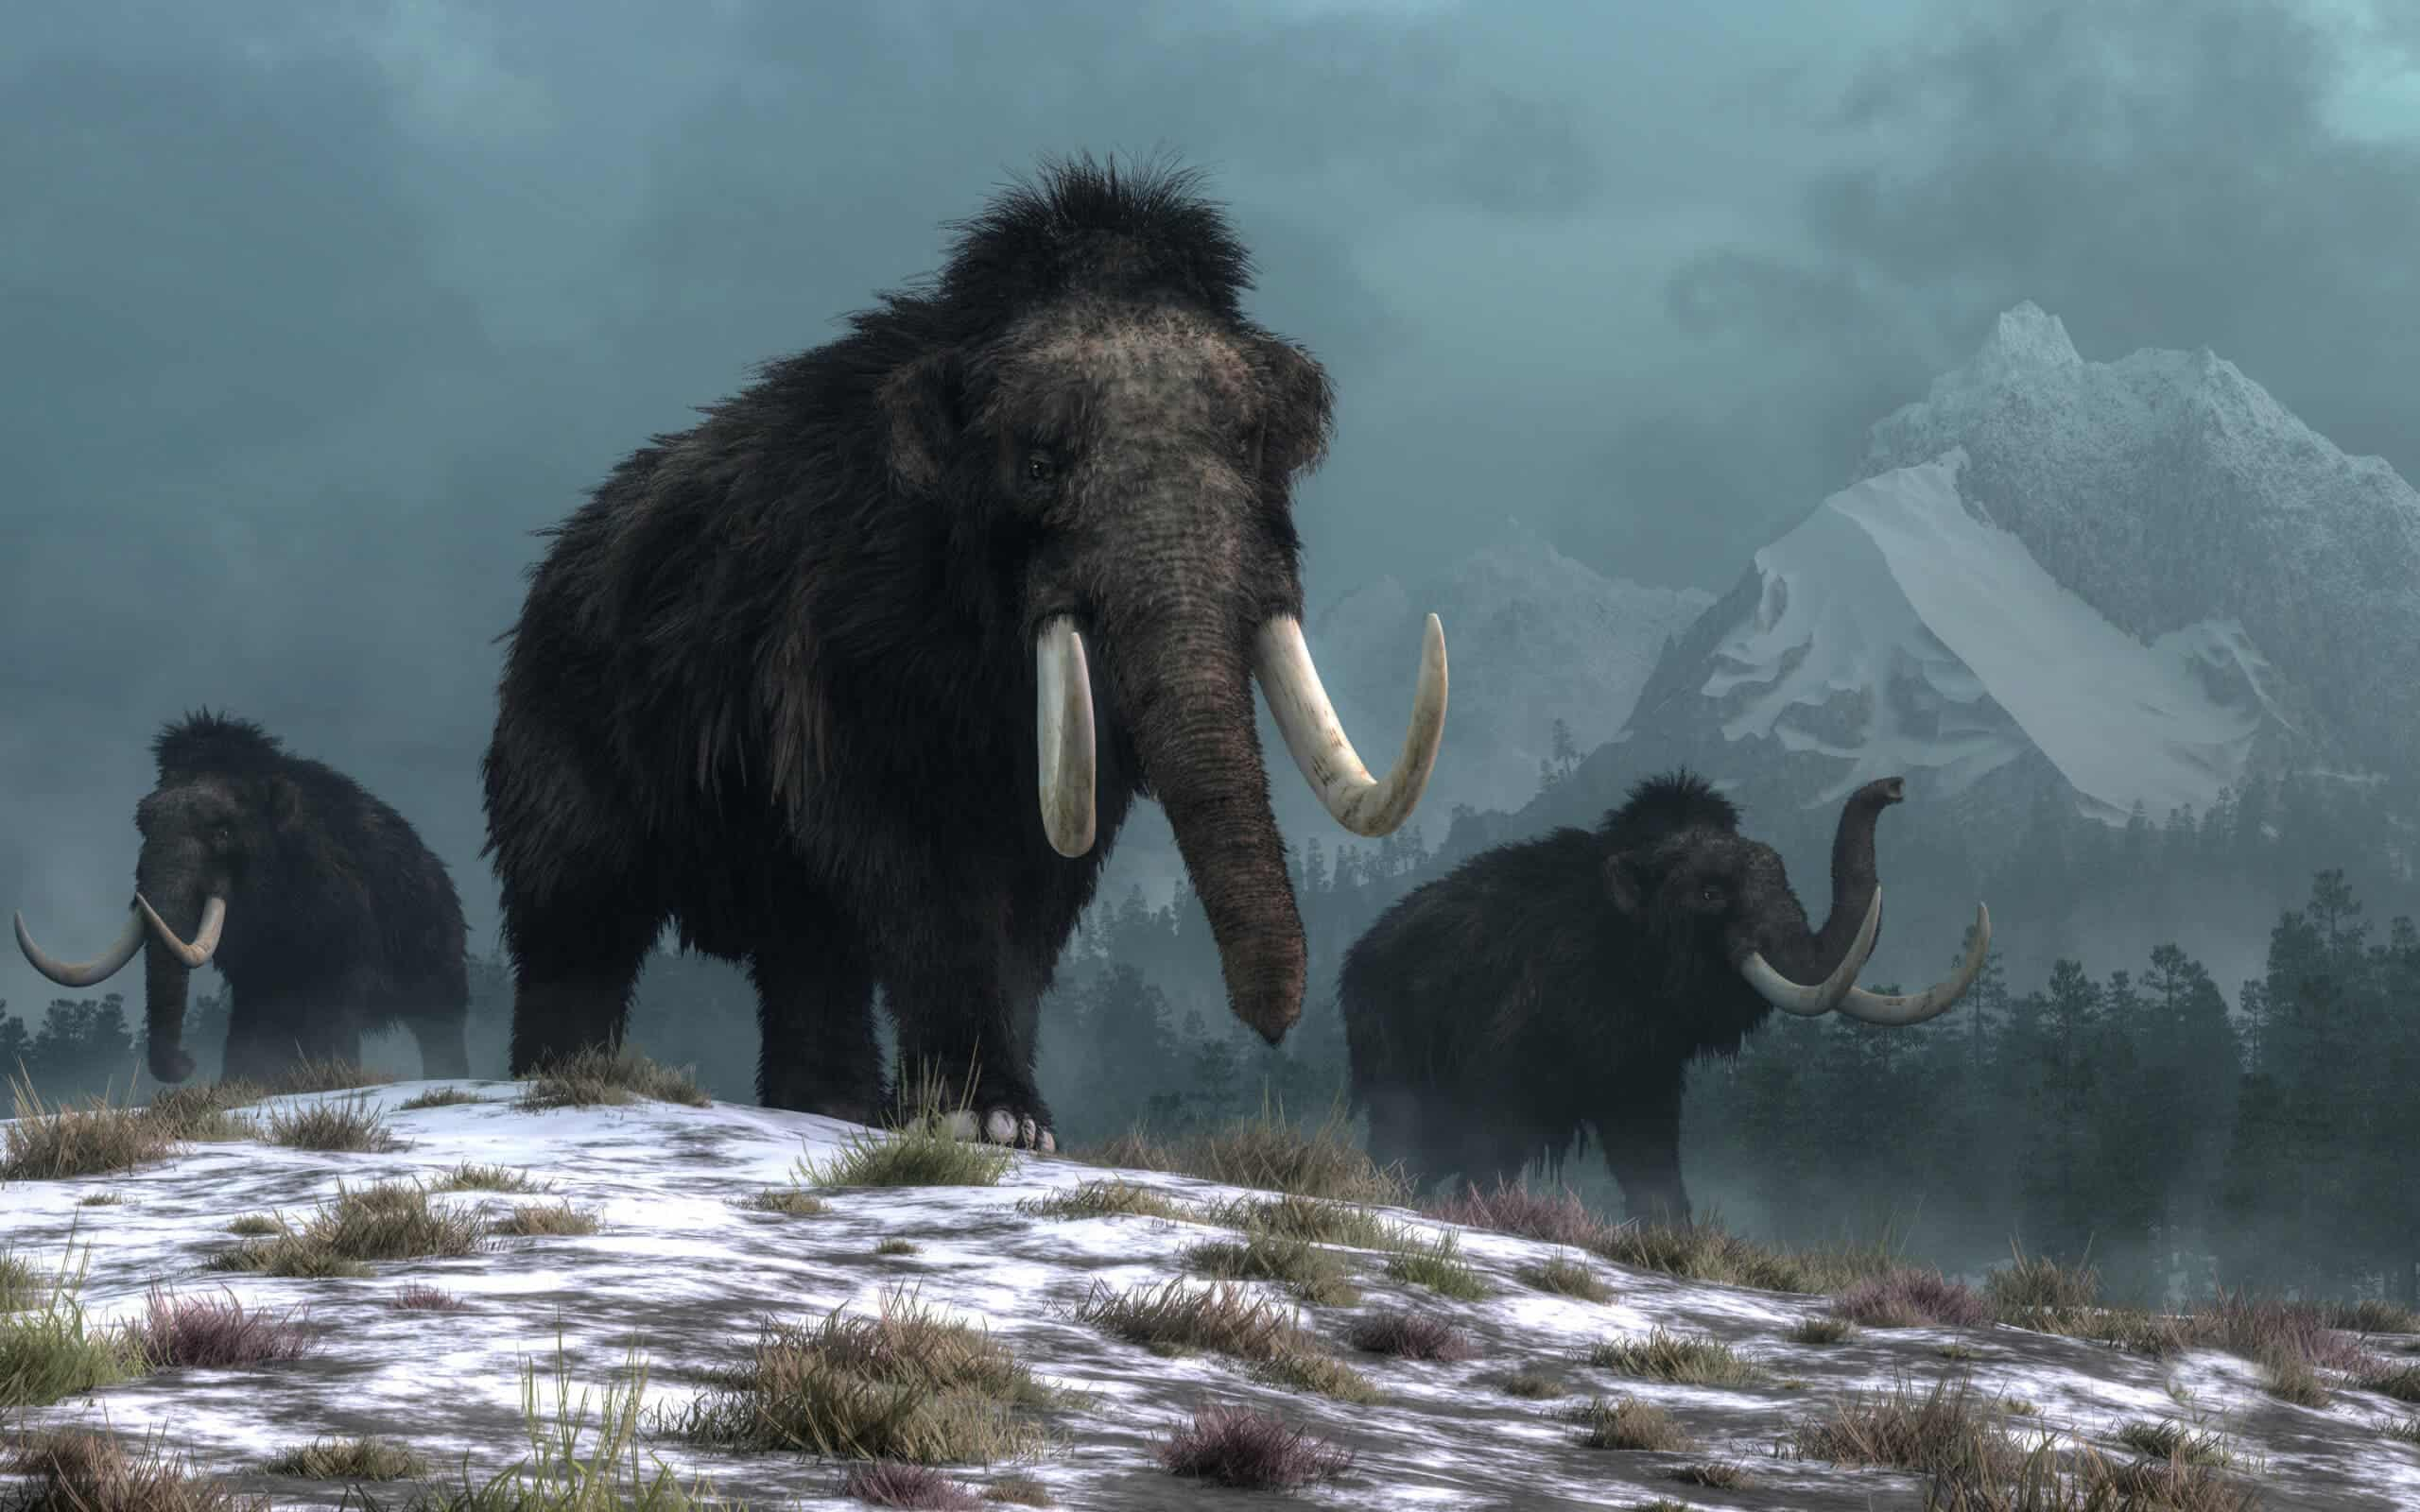 Not this time: climate change, not humans, wiped out wooly mammoths - ZME Science